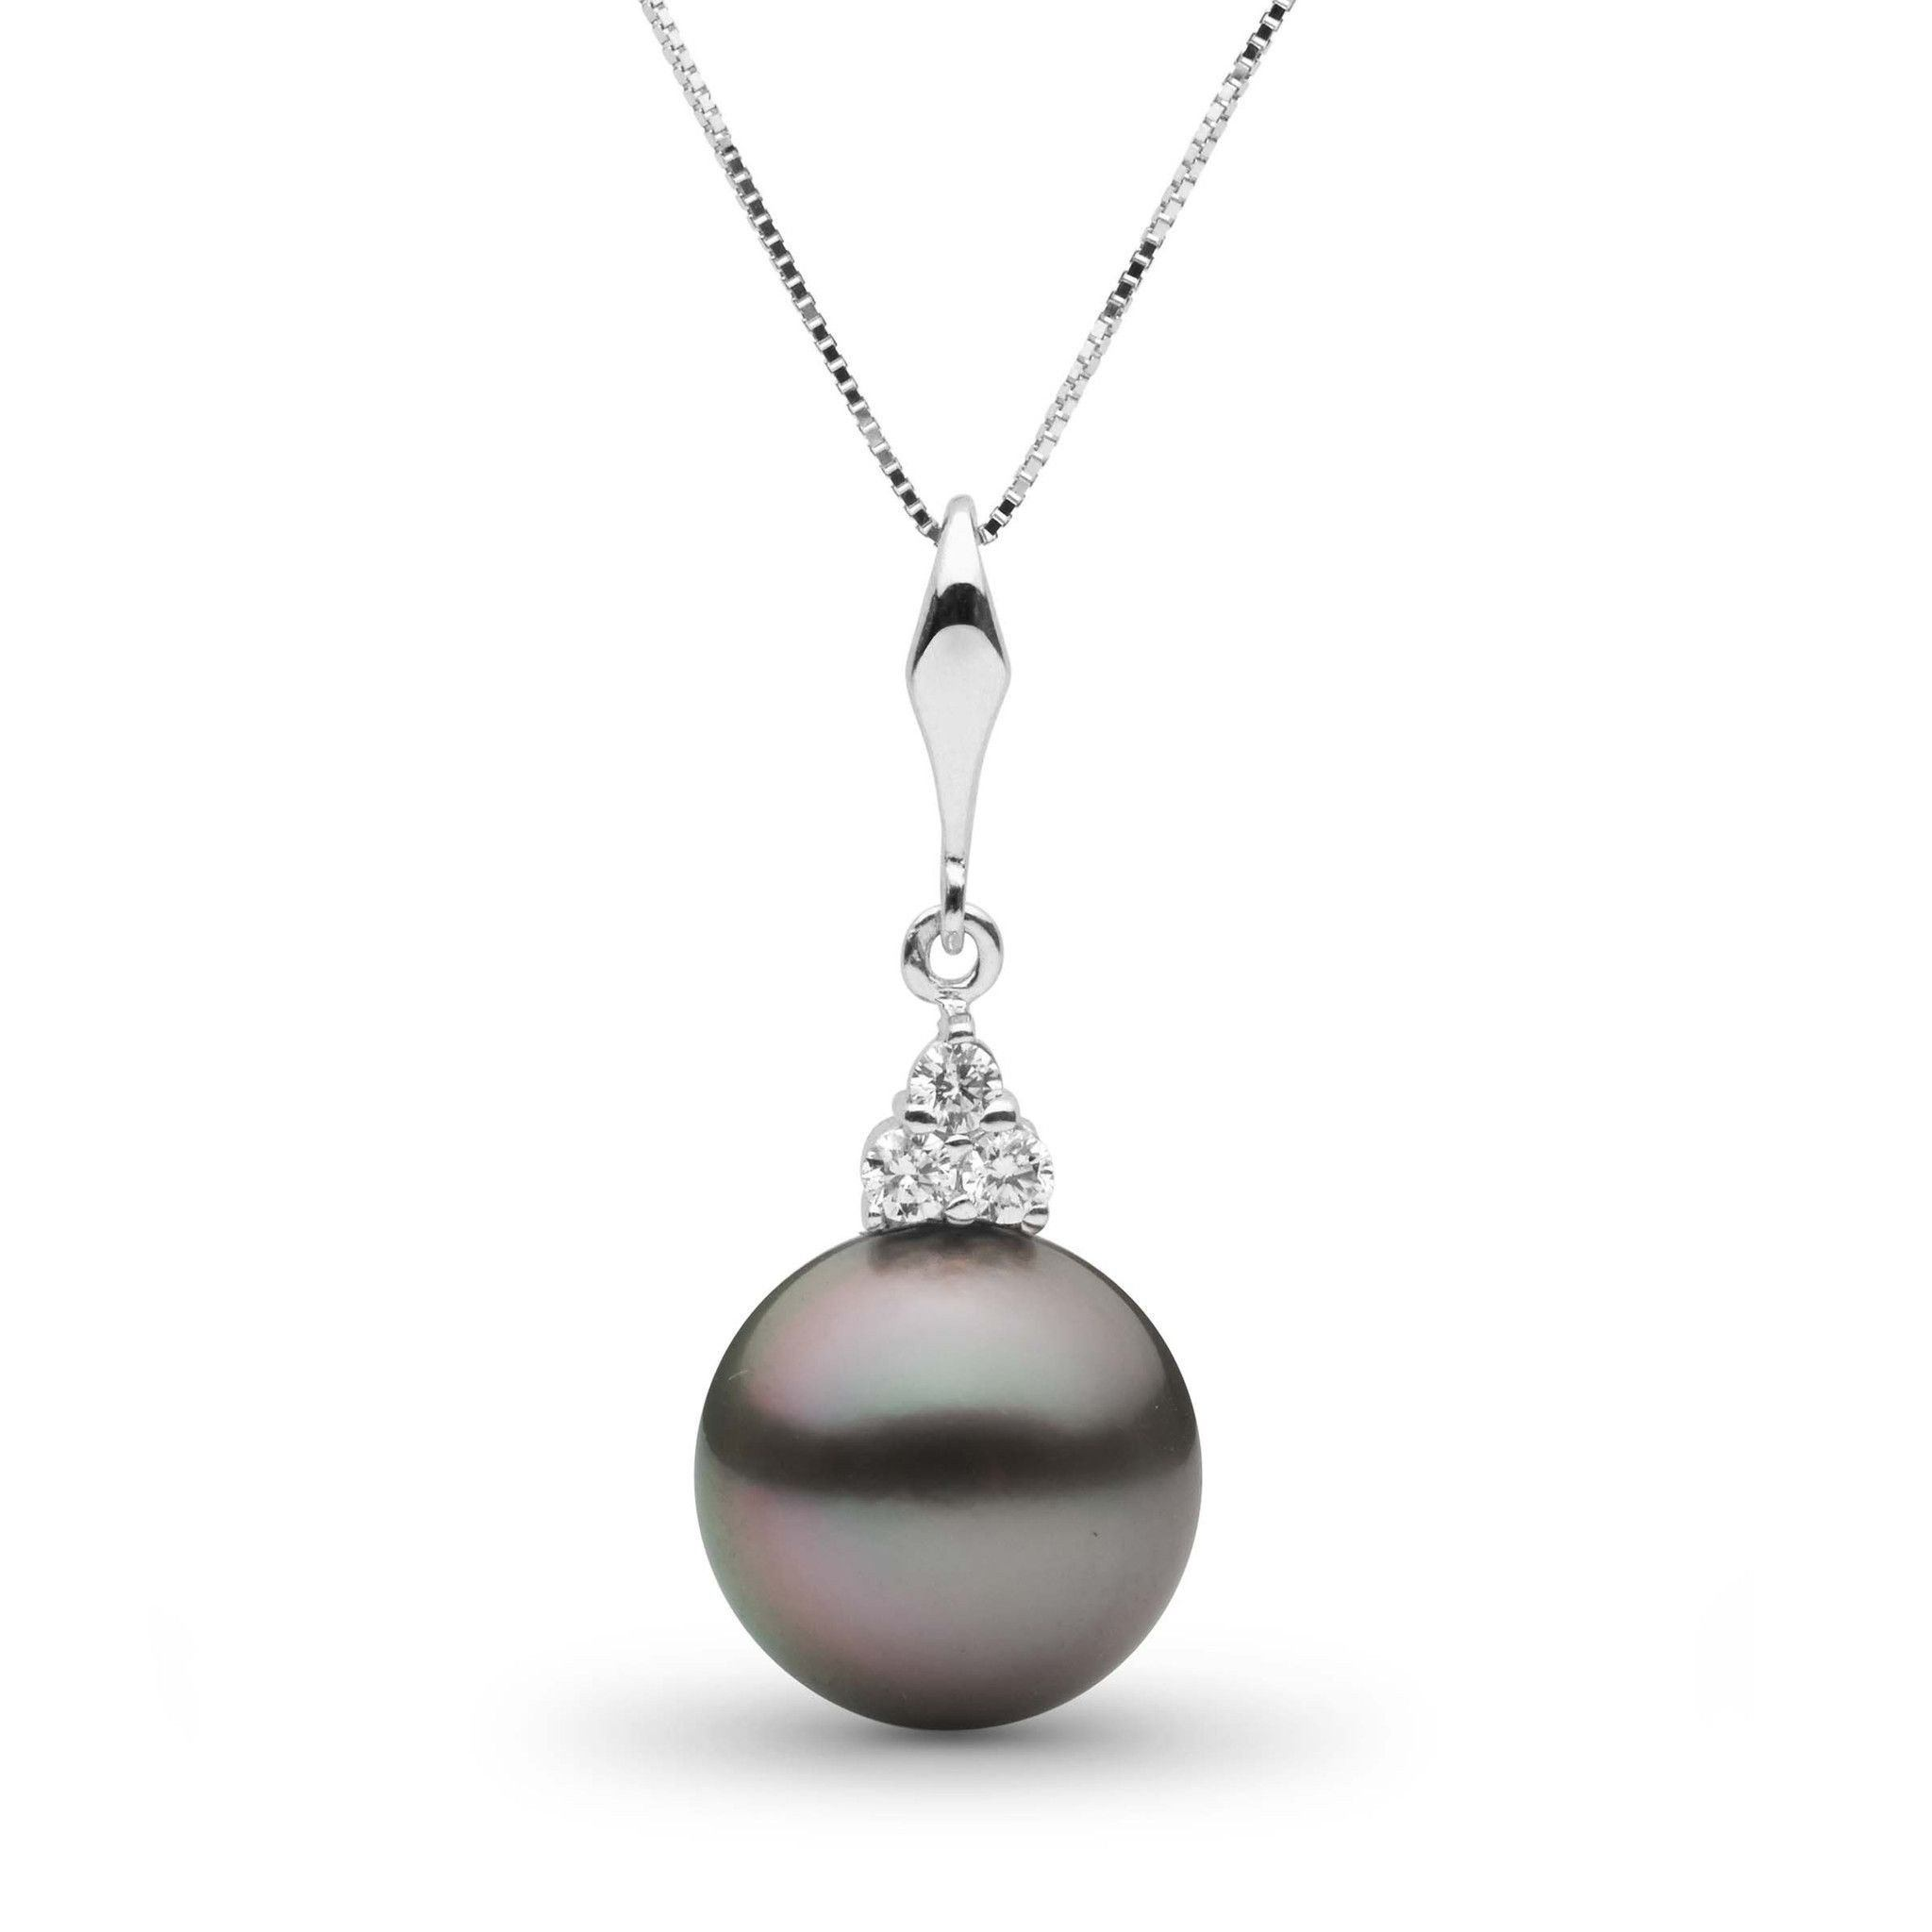 Always Collection 11.0-12.0 mm Tahitian Pearl and Diamond Pendant